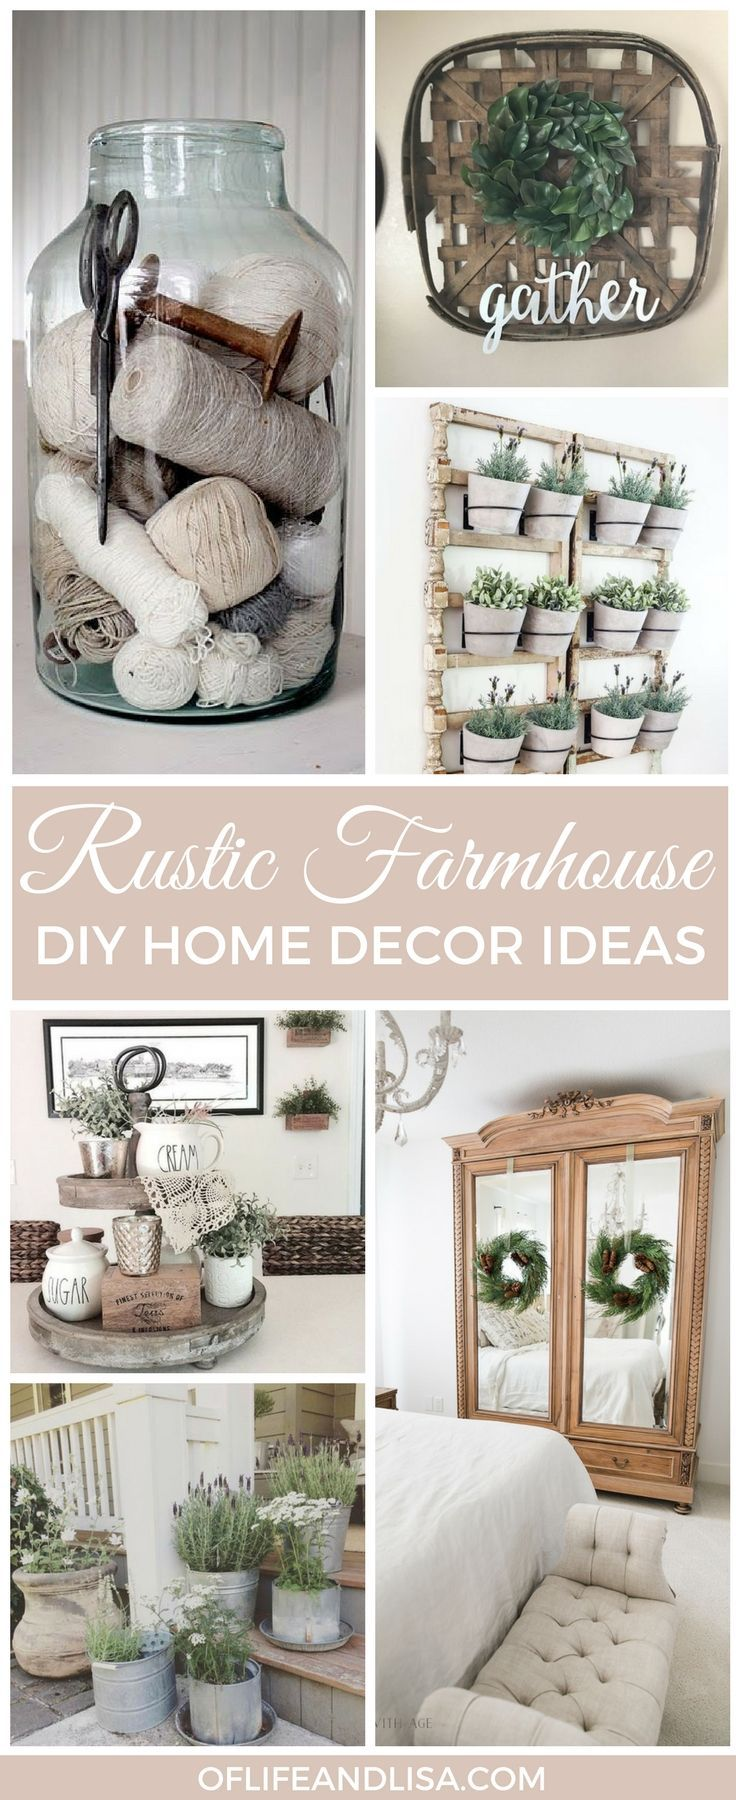 These rustic farmhouse decor ideas are absolutely stunning! I can not wait to try the spool in the jar piece. I believe that would look really nice on my mantel. What's your favorite look? REPIN TO YOUR FOLLOWERS #home #decor #homemade #rustic #rusticfarmhouse #farmhousestyle #farmhouse #farmhousedecor #farmhousekitchen #farmhousebedroom